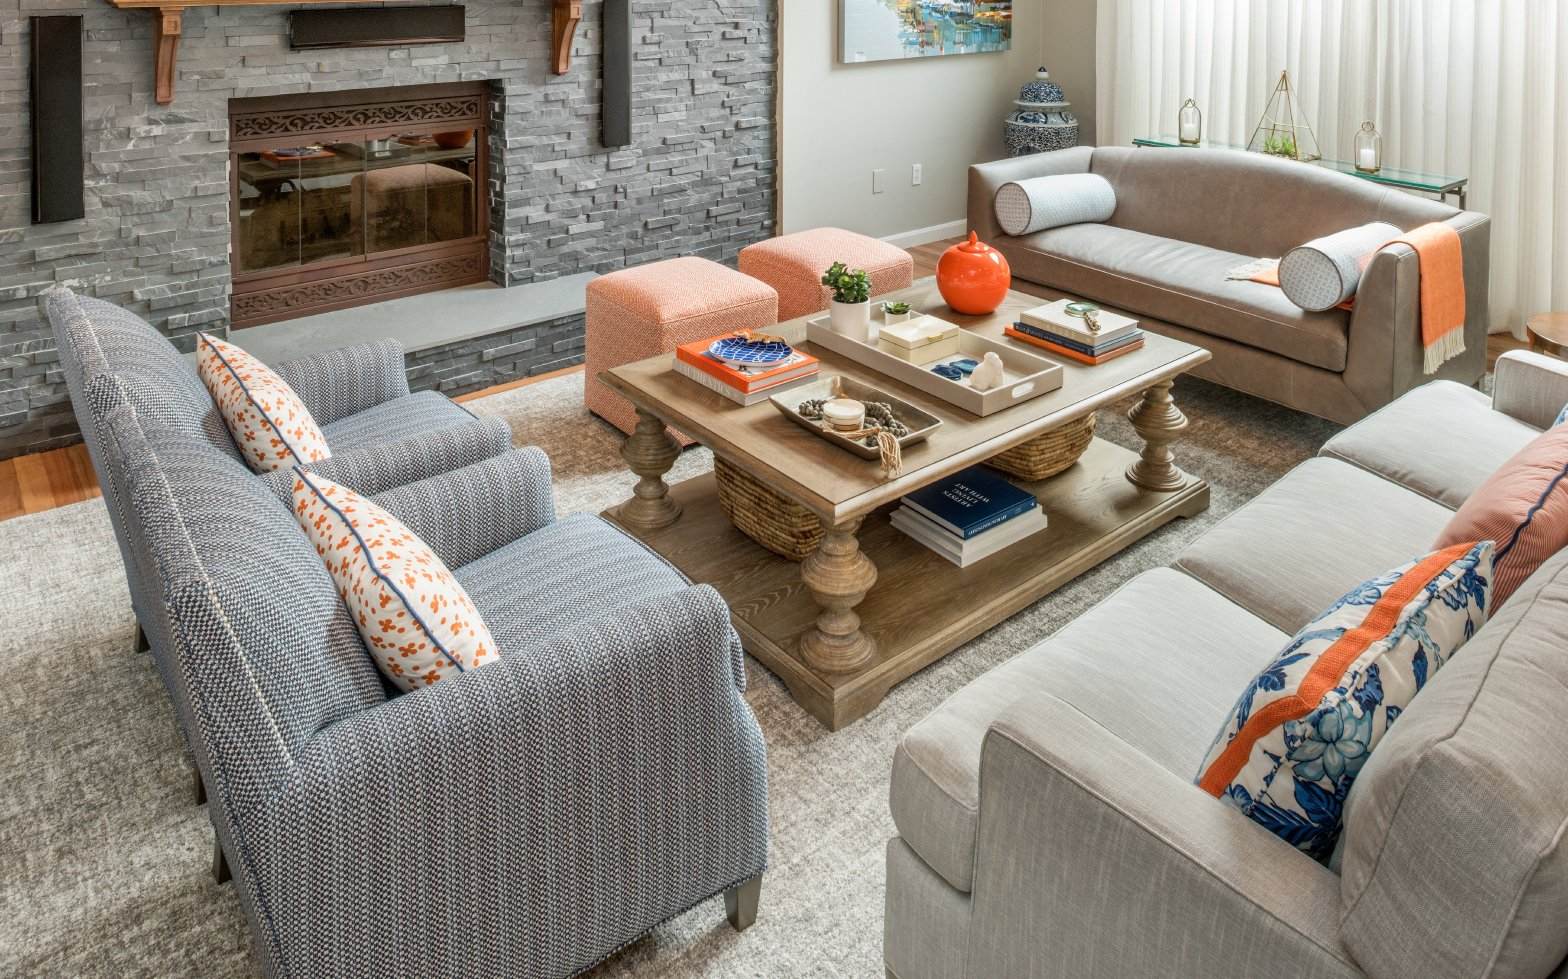 blakely interior design colorful living room blue orange classic vibrant chandelier stone fireplace